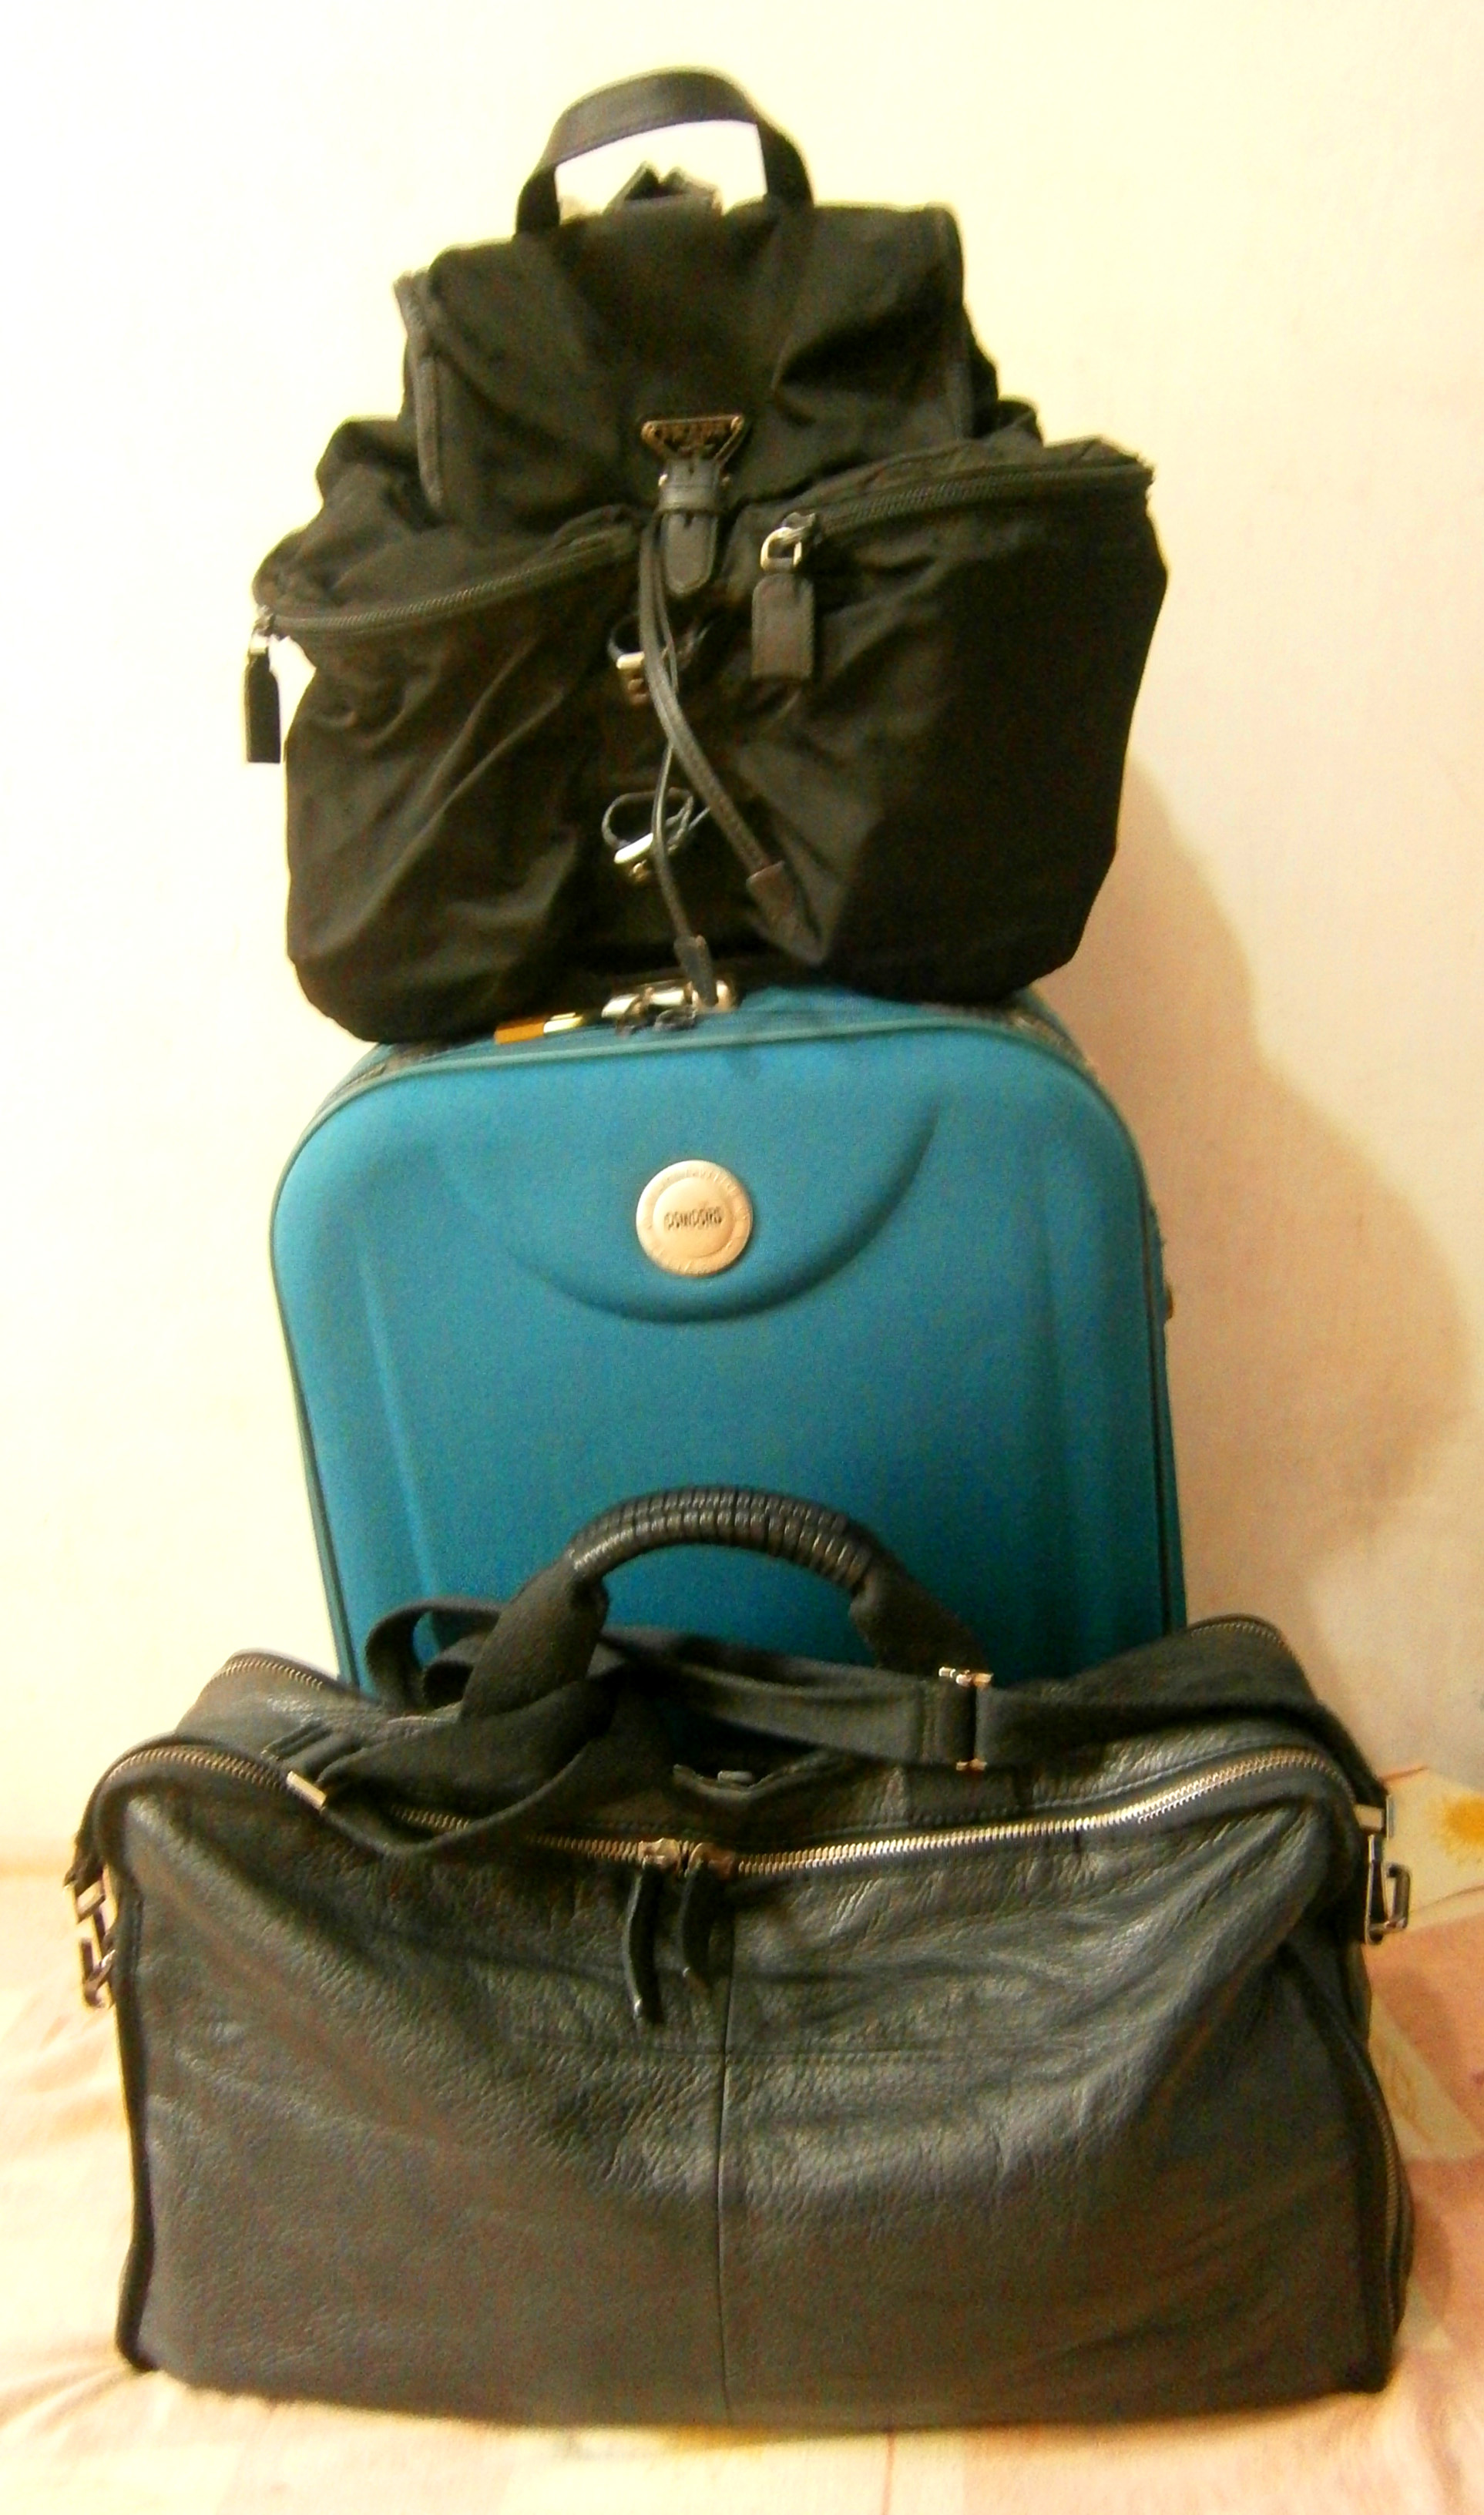 The cliche - all my bag are packed, I'm ready to go - Seoul, South Korea